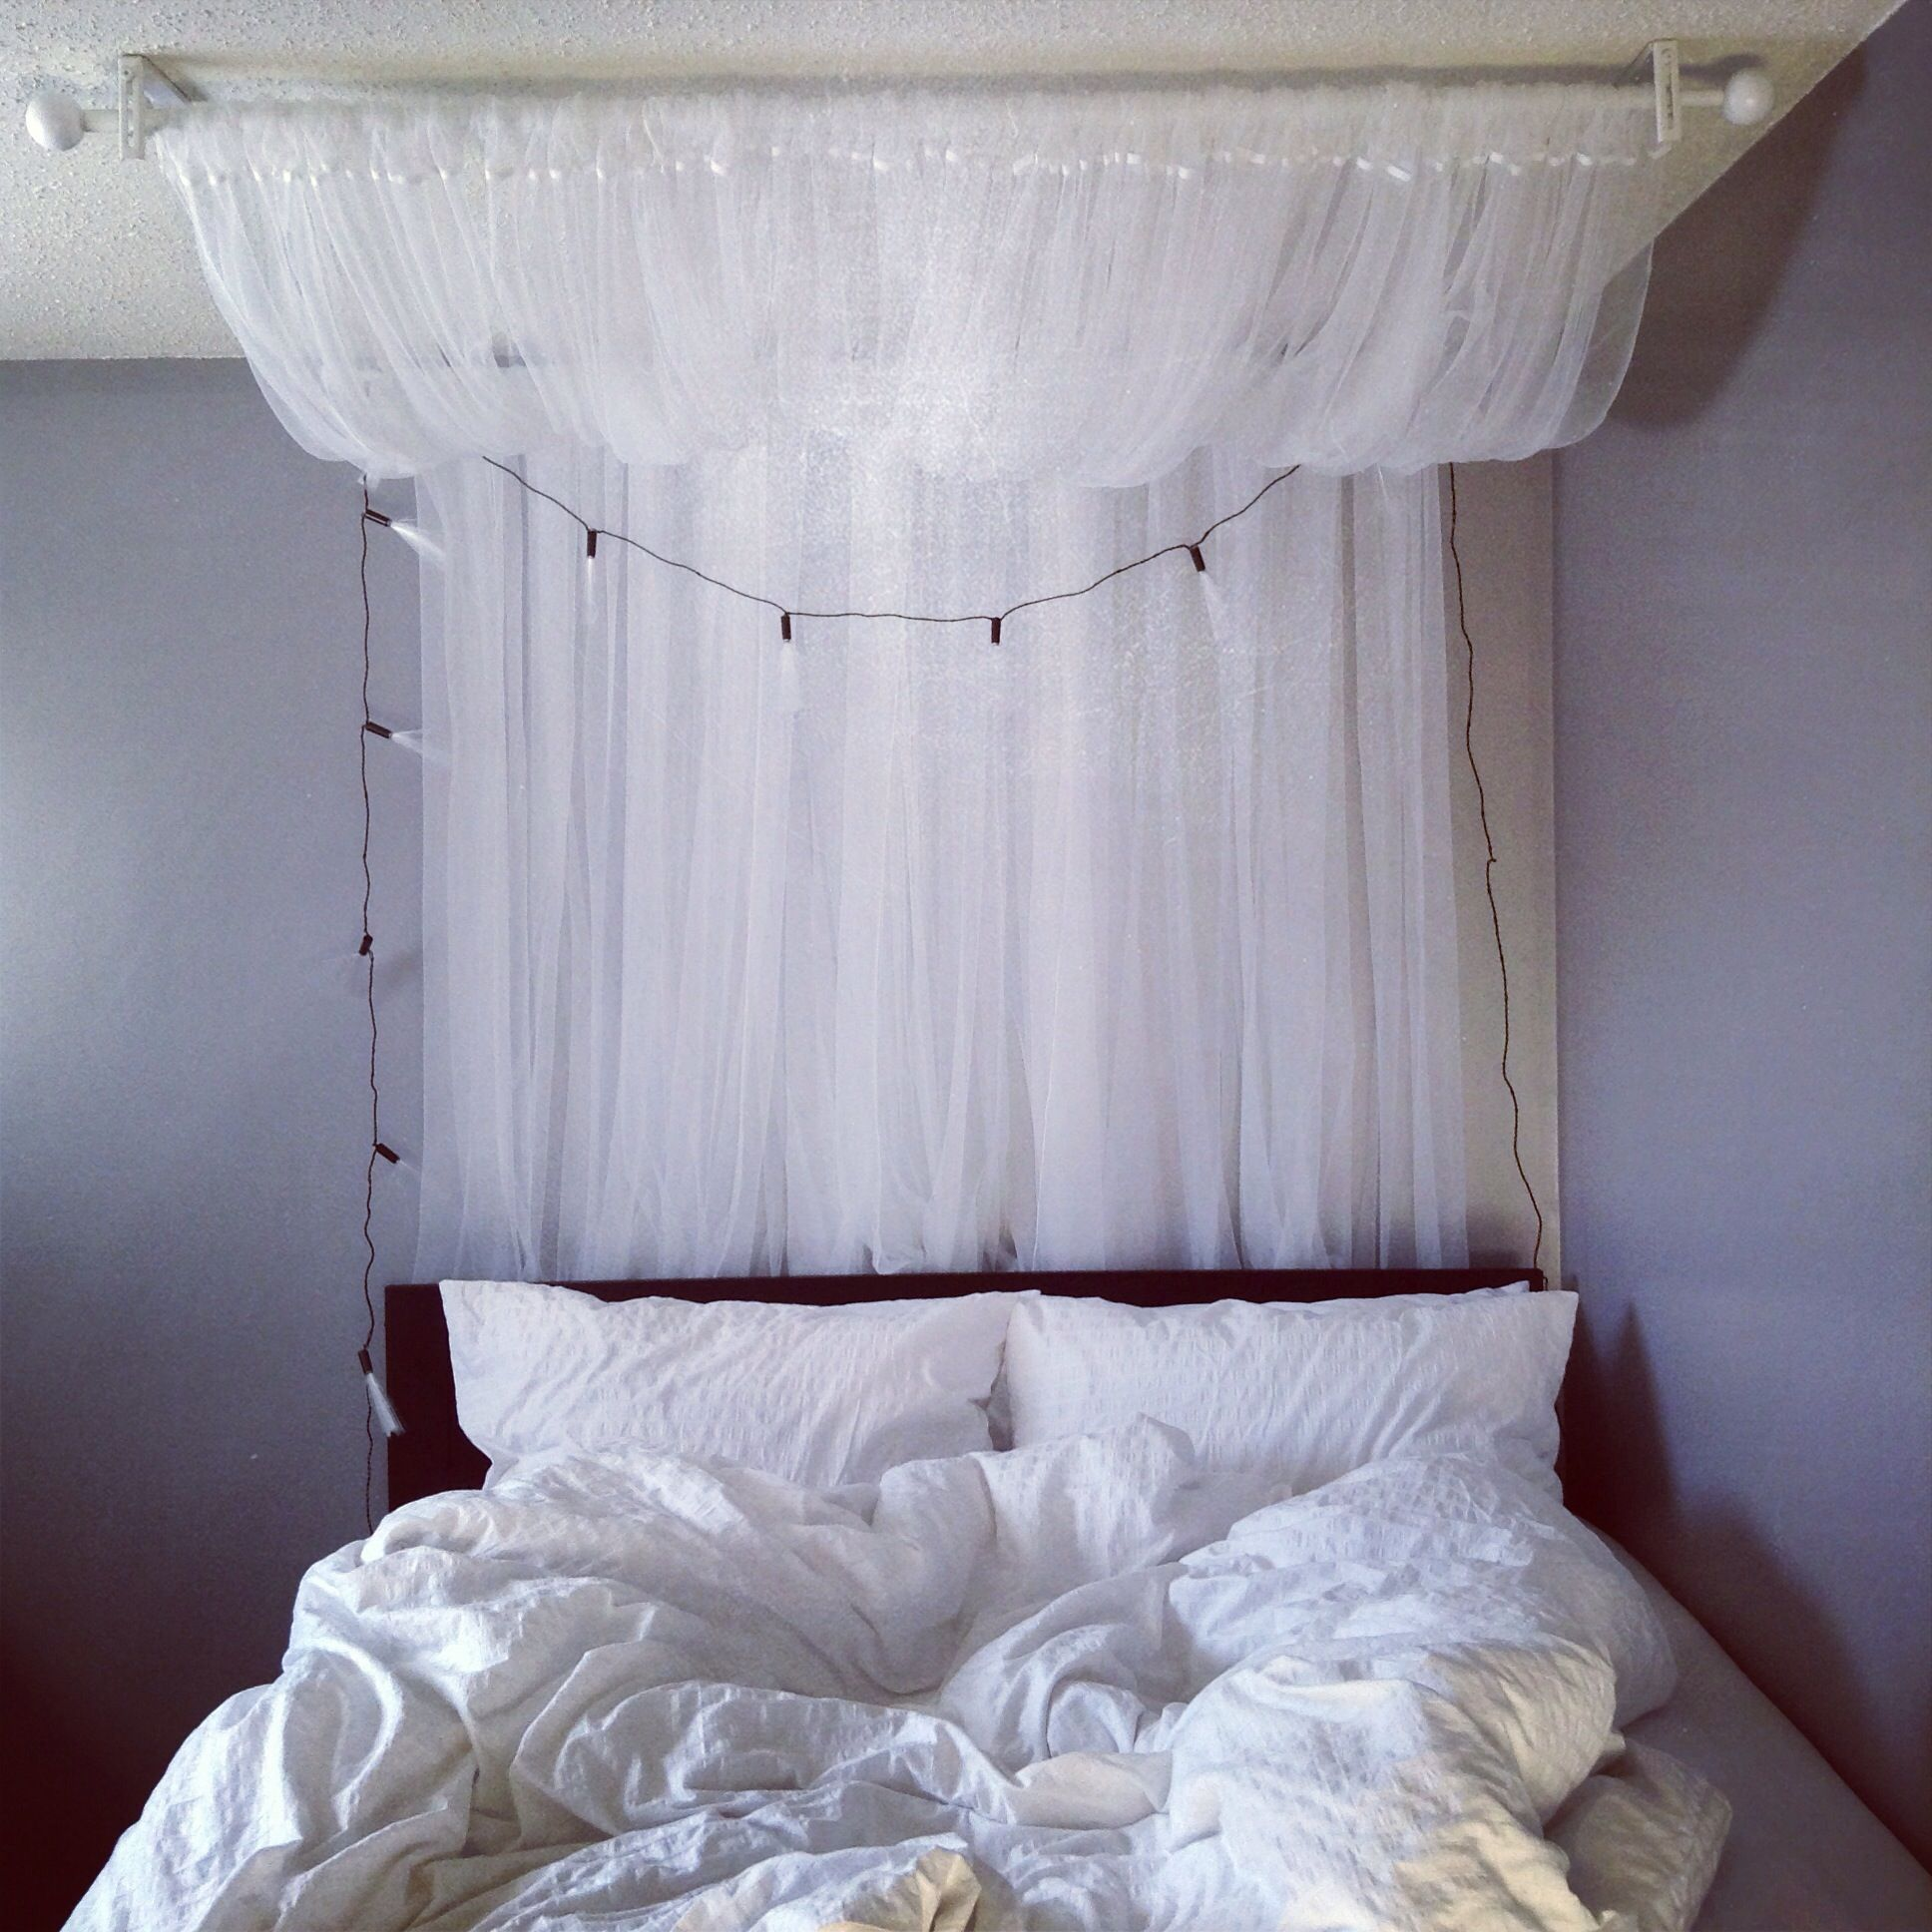 Diy Canopy 2 Curtain Rods And Sets